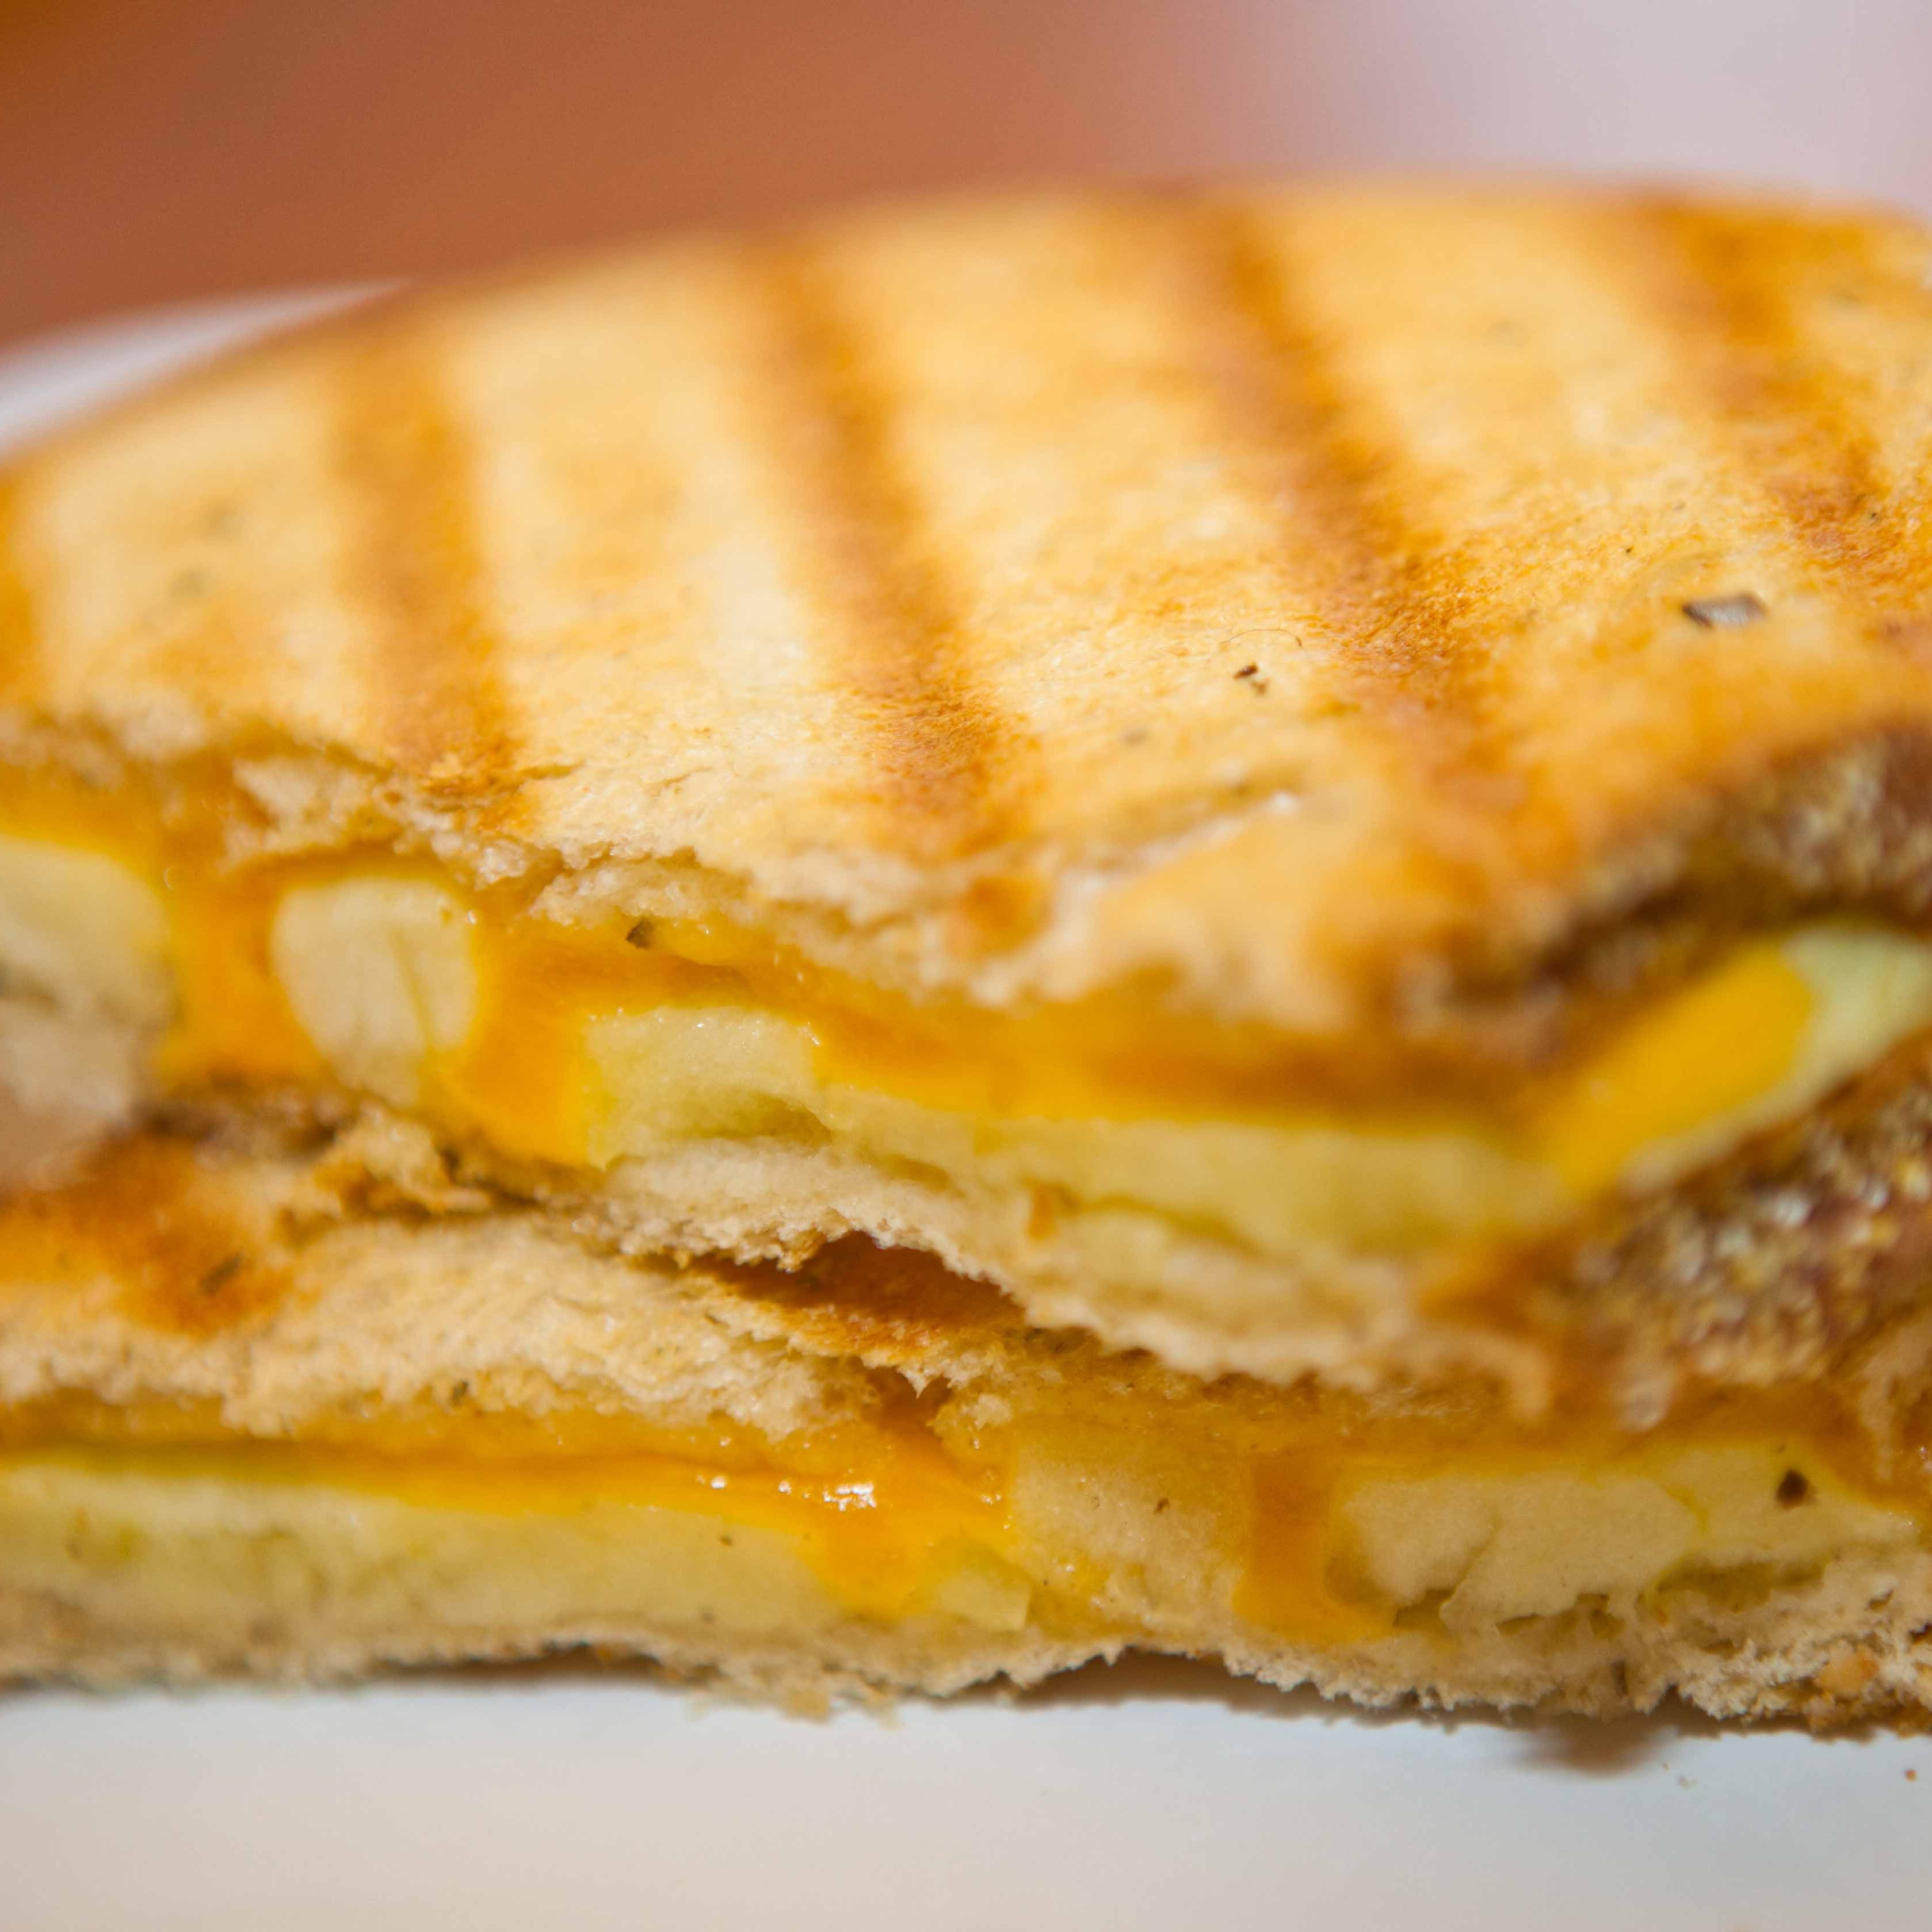 Image of Random Best Cheese for a Grilled Cheese Sandwich